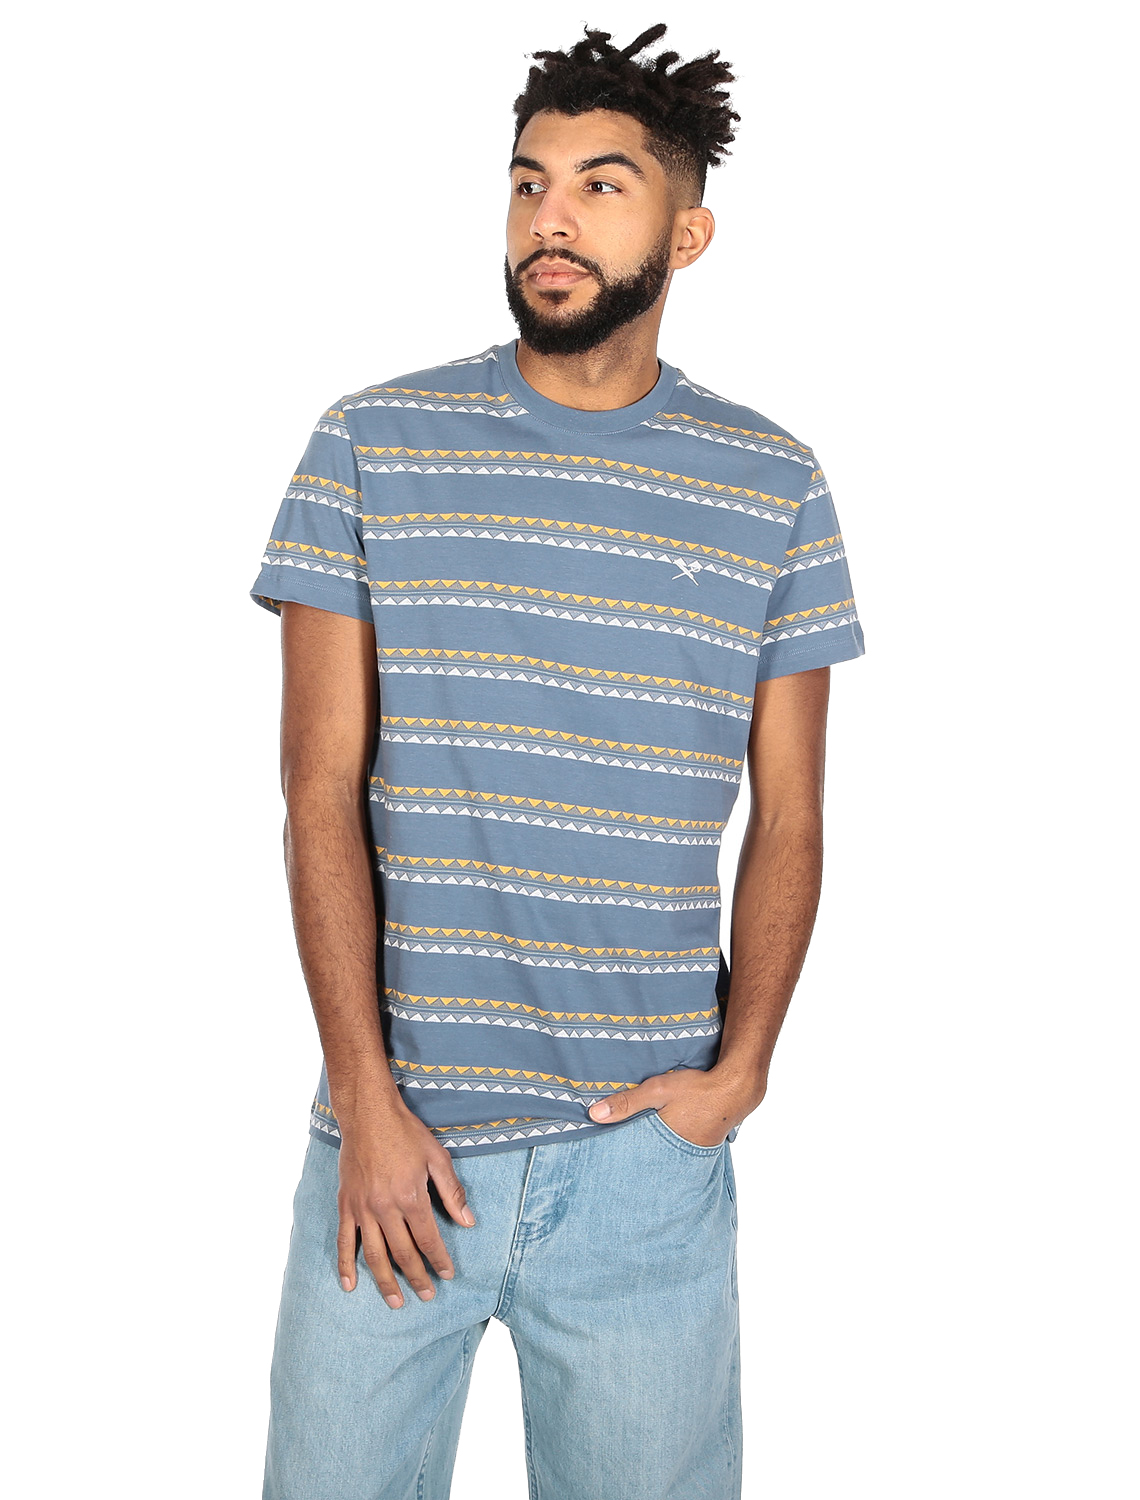 MONTE-NOE-JAQUE-0-TEE-T-Shirt-greyblue-3